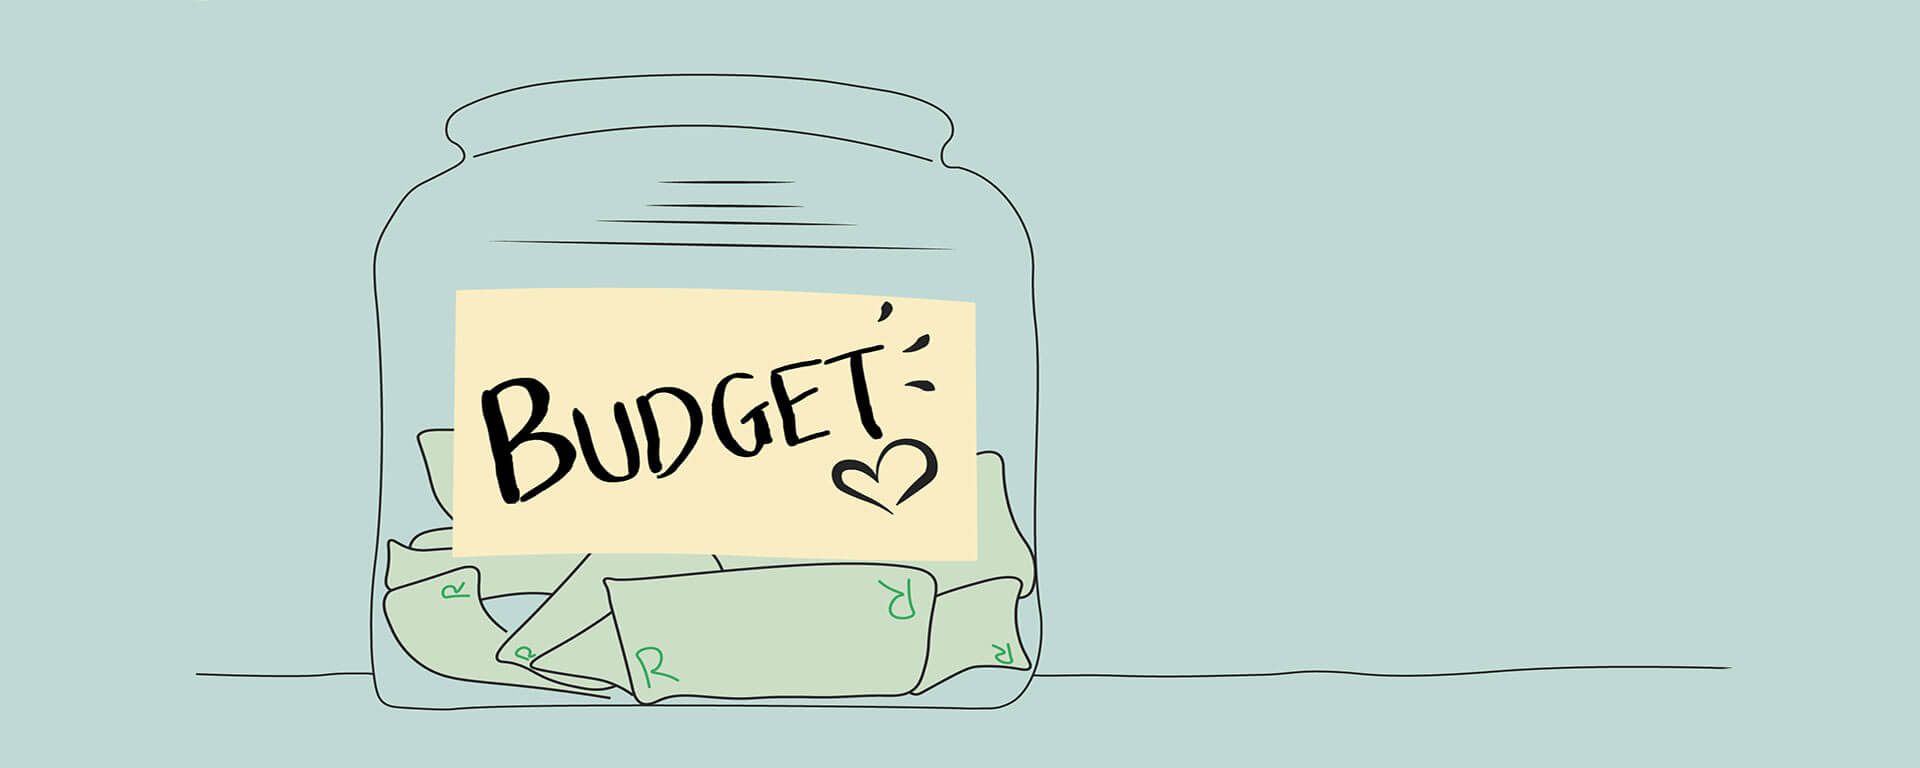 Saving jar labeled budget to live within your means